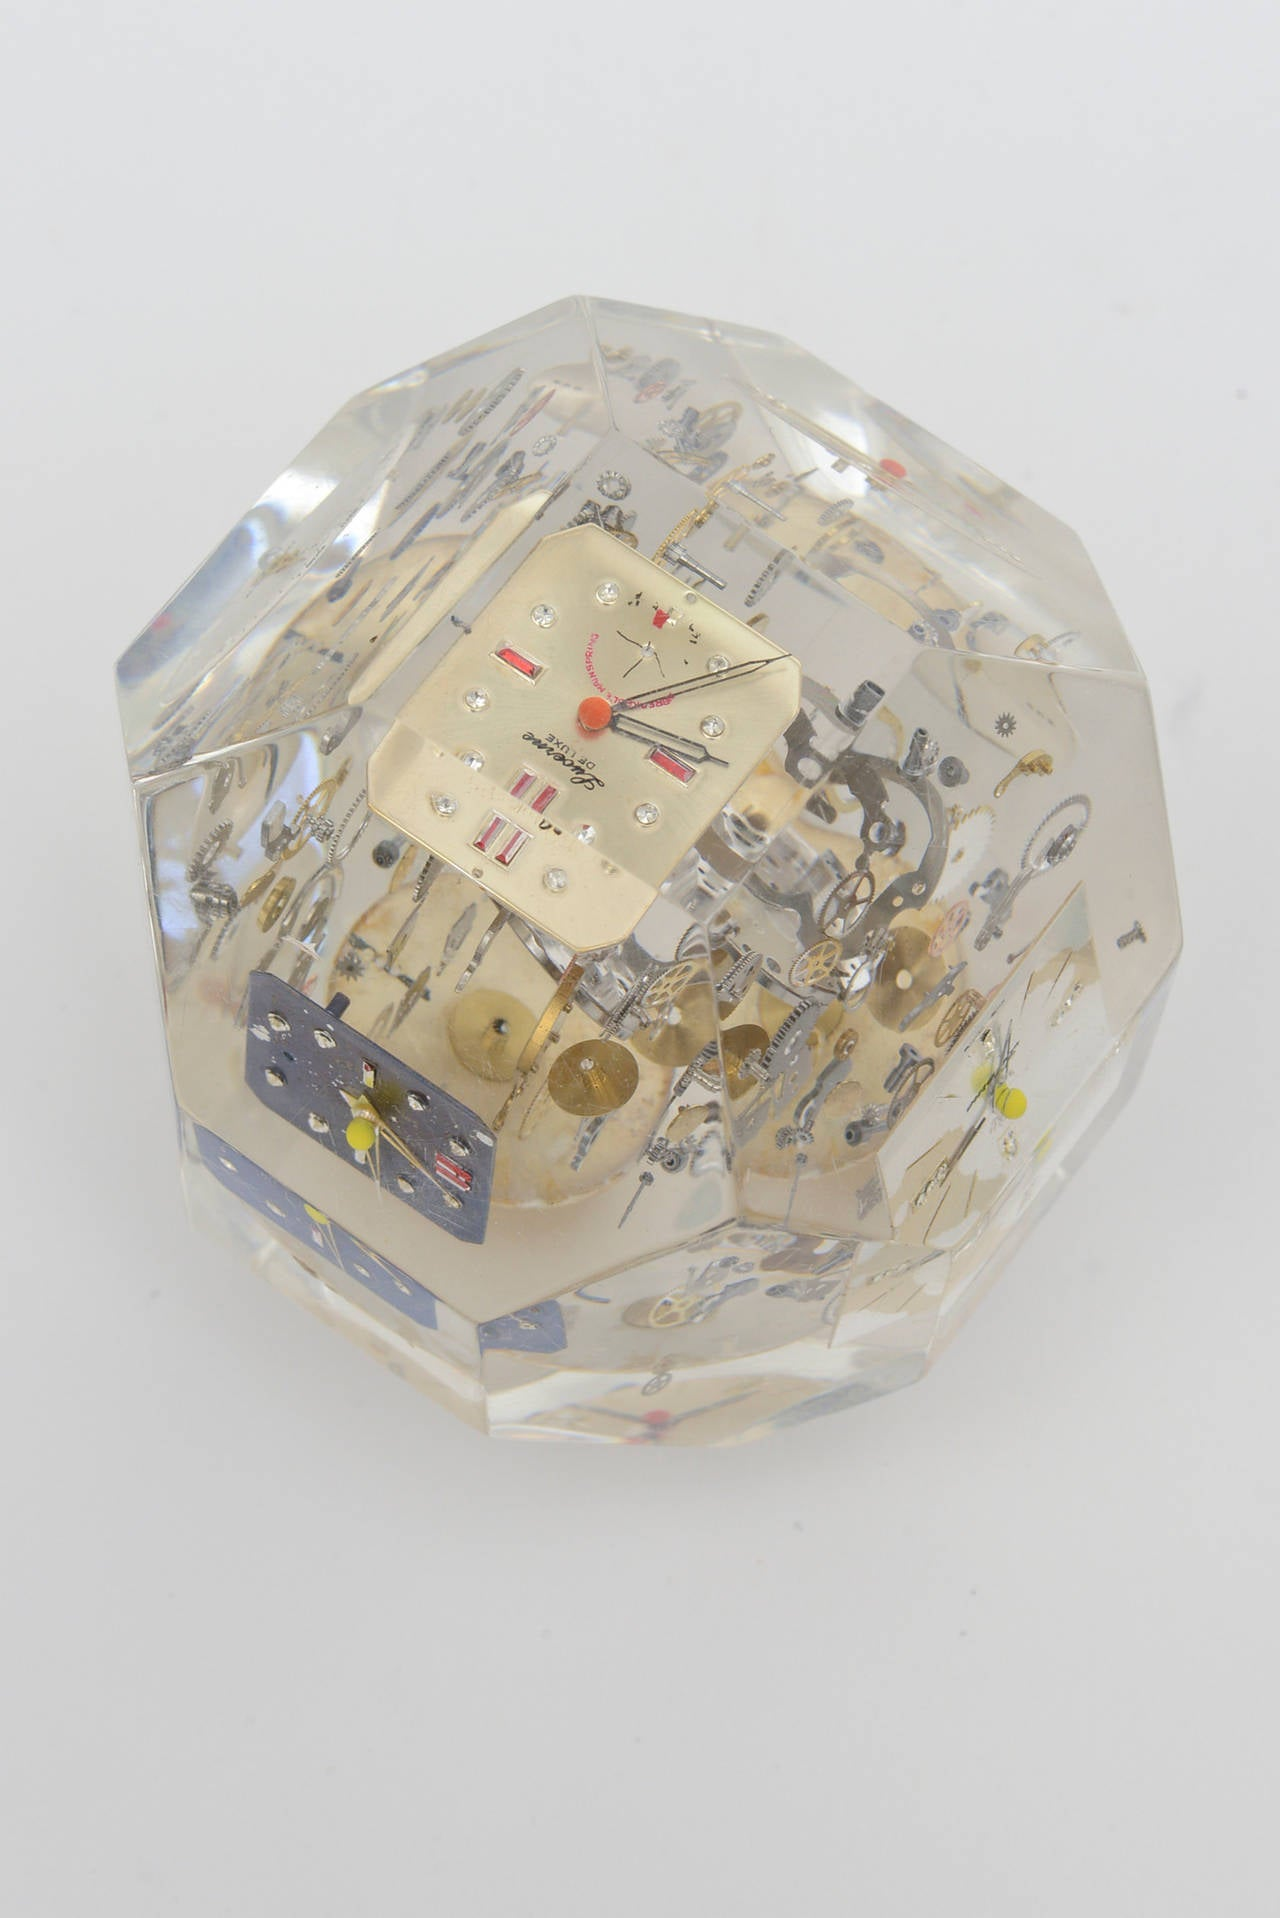 Arman Style Clock And Watch Parts Lucite Faceted